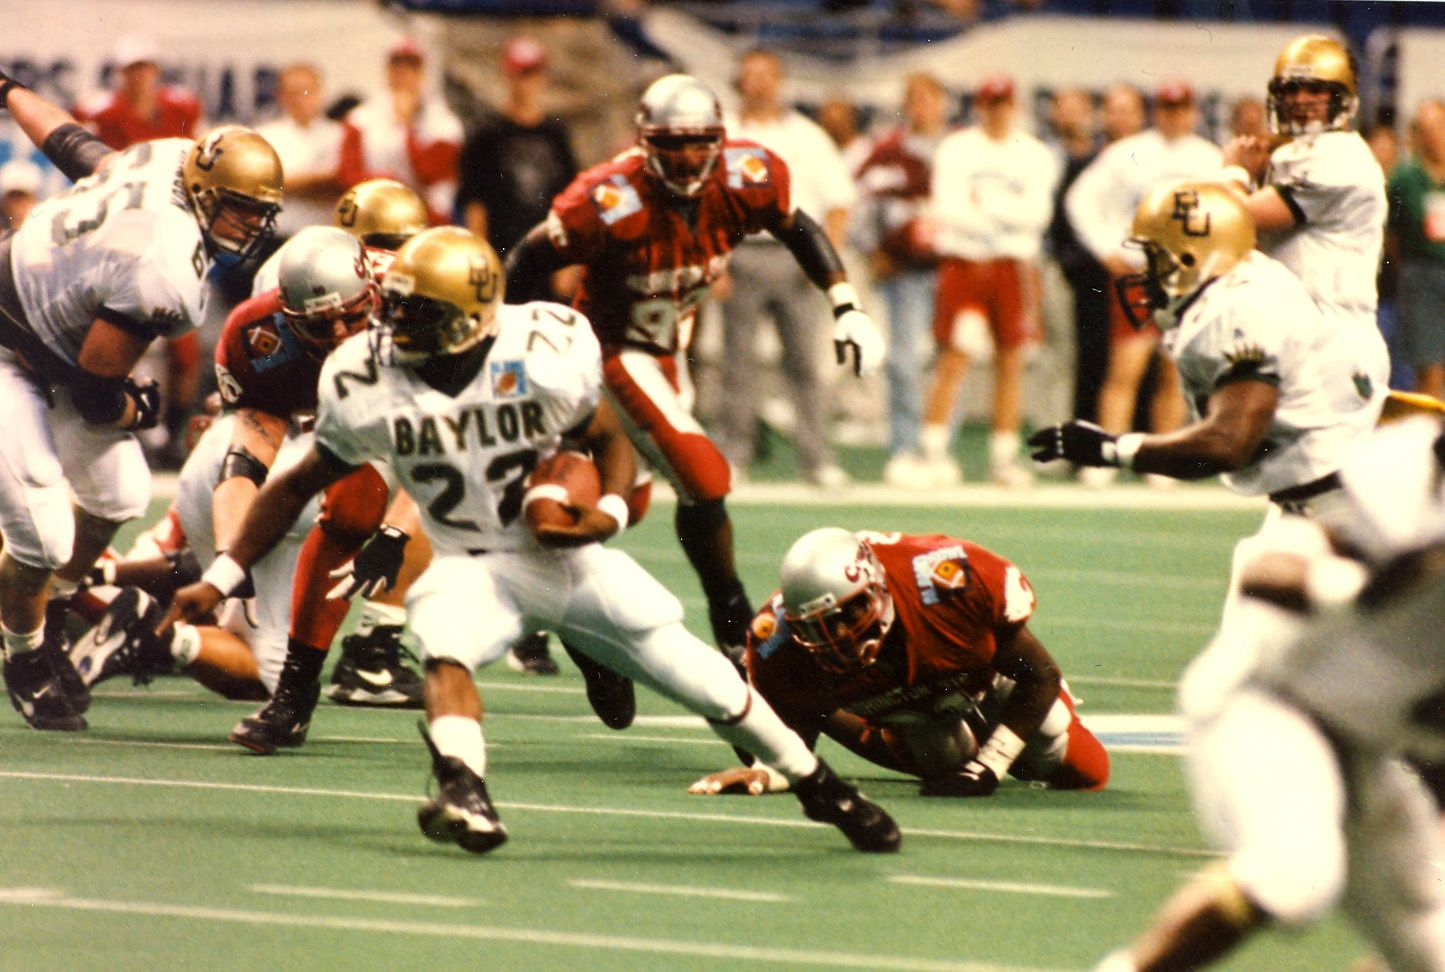 1994 Builders Square Alamo Bowl. Washington State 10 vs